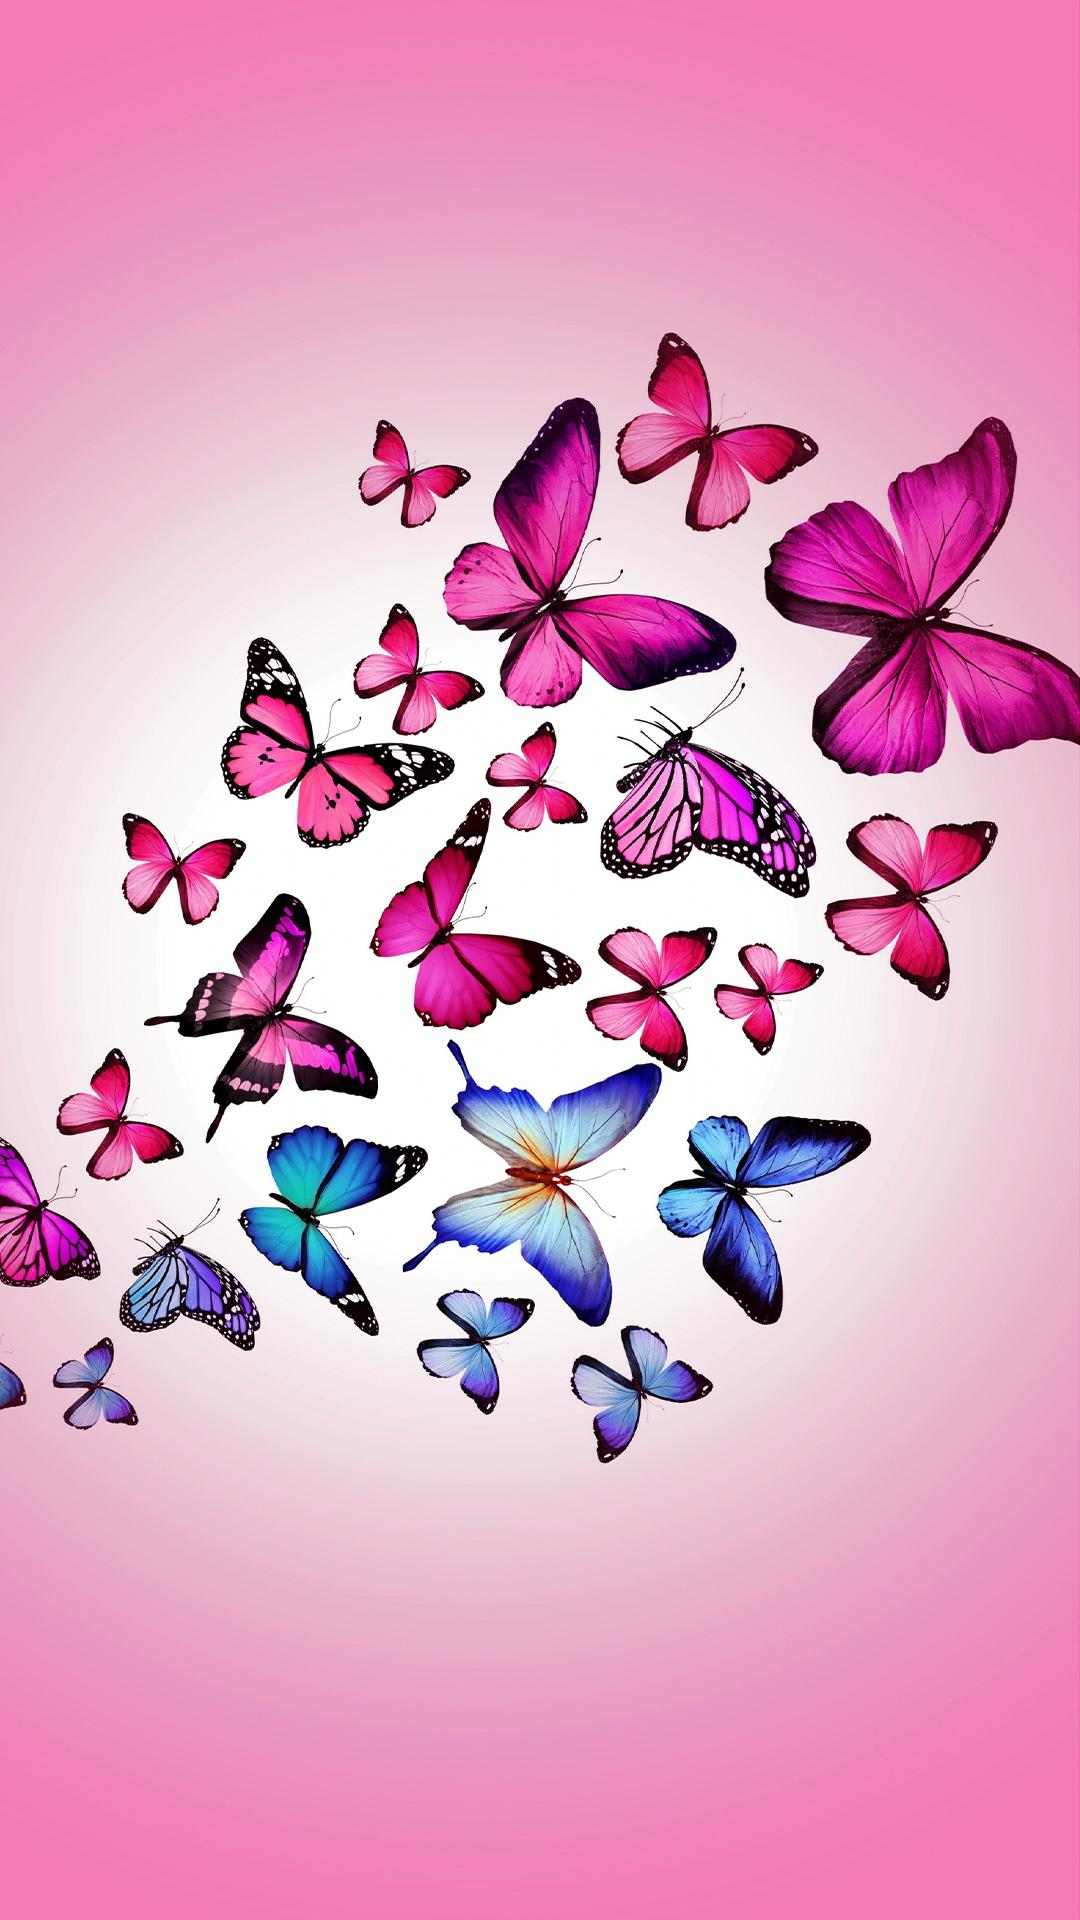 Download Pink Butterflies Wallpaper, HD Backgrounds Download